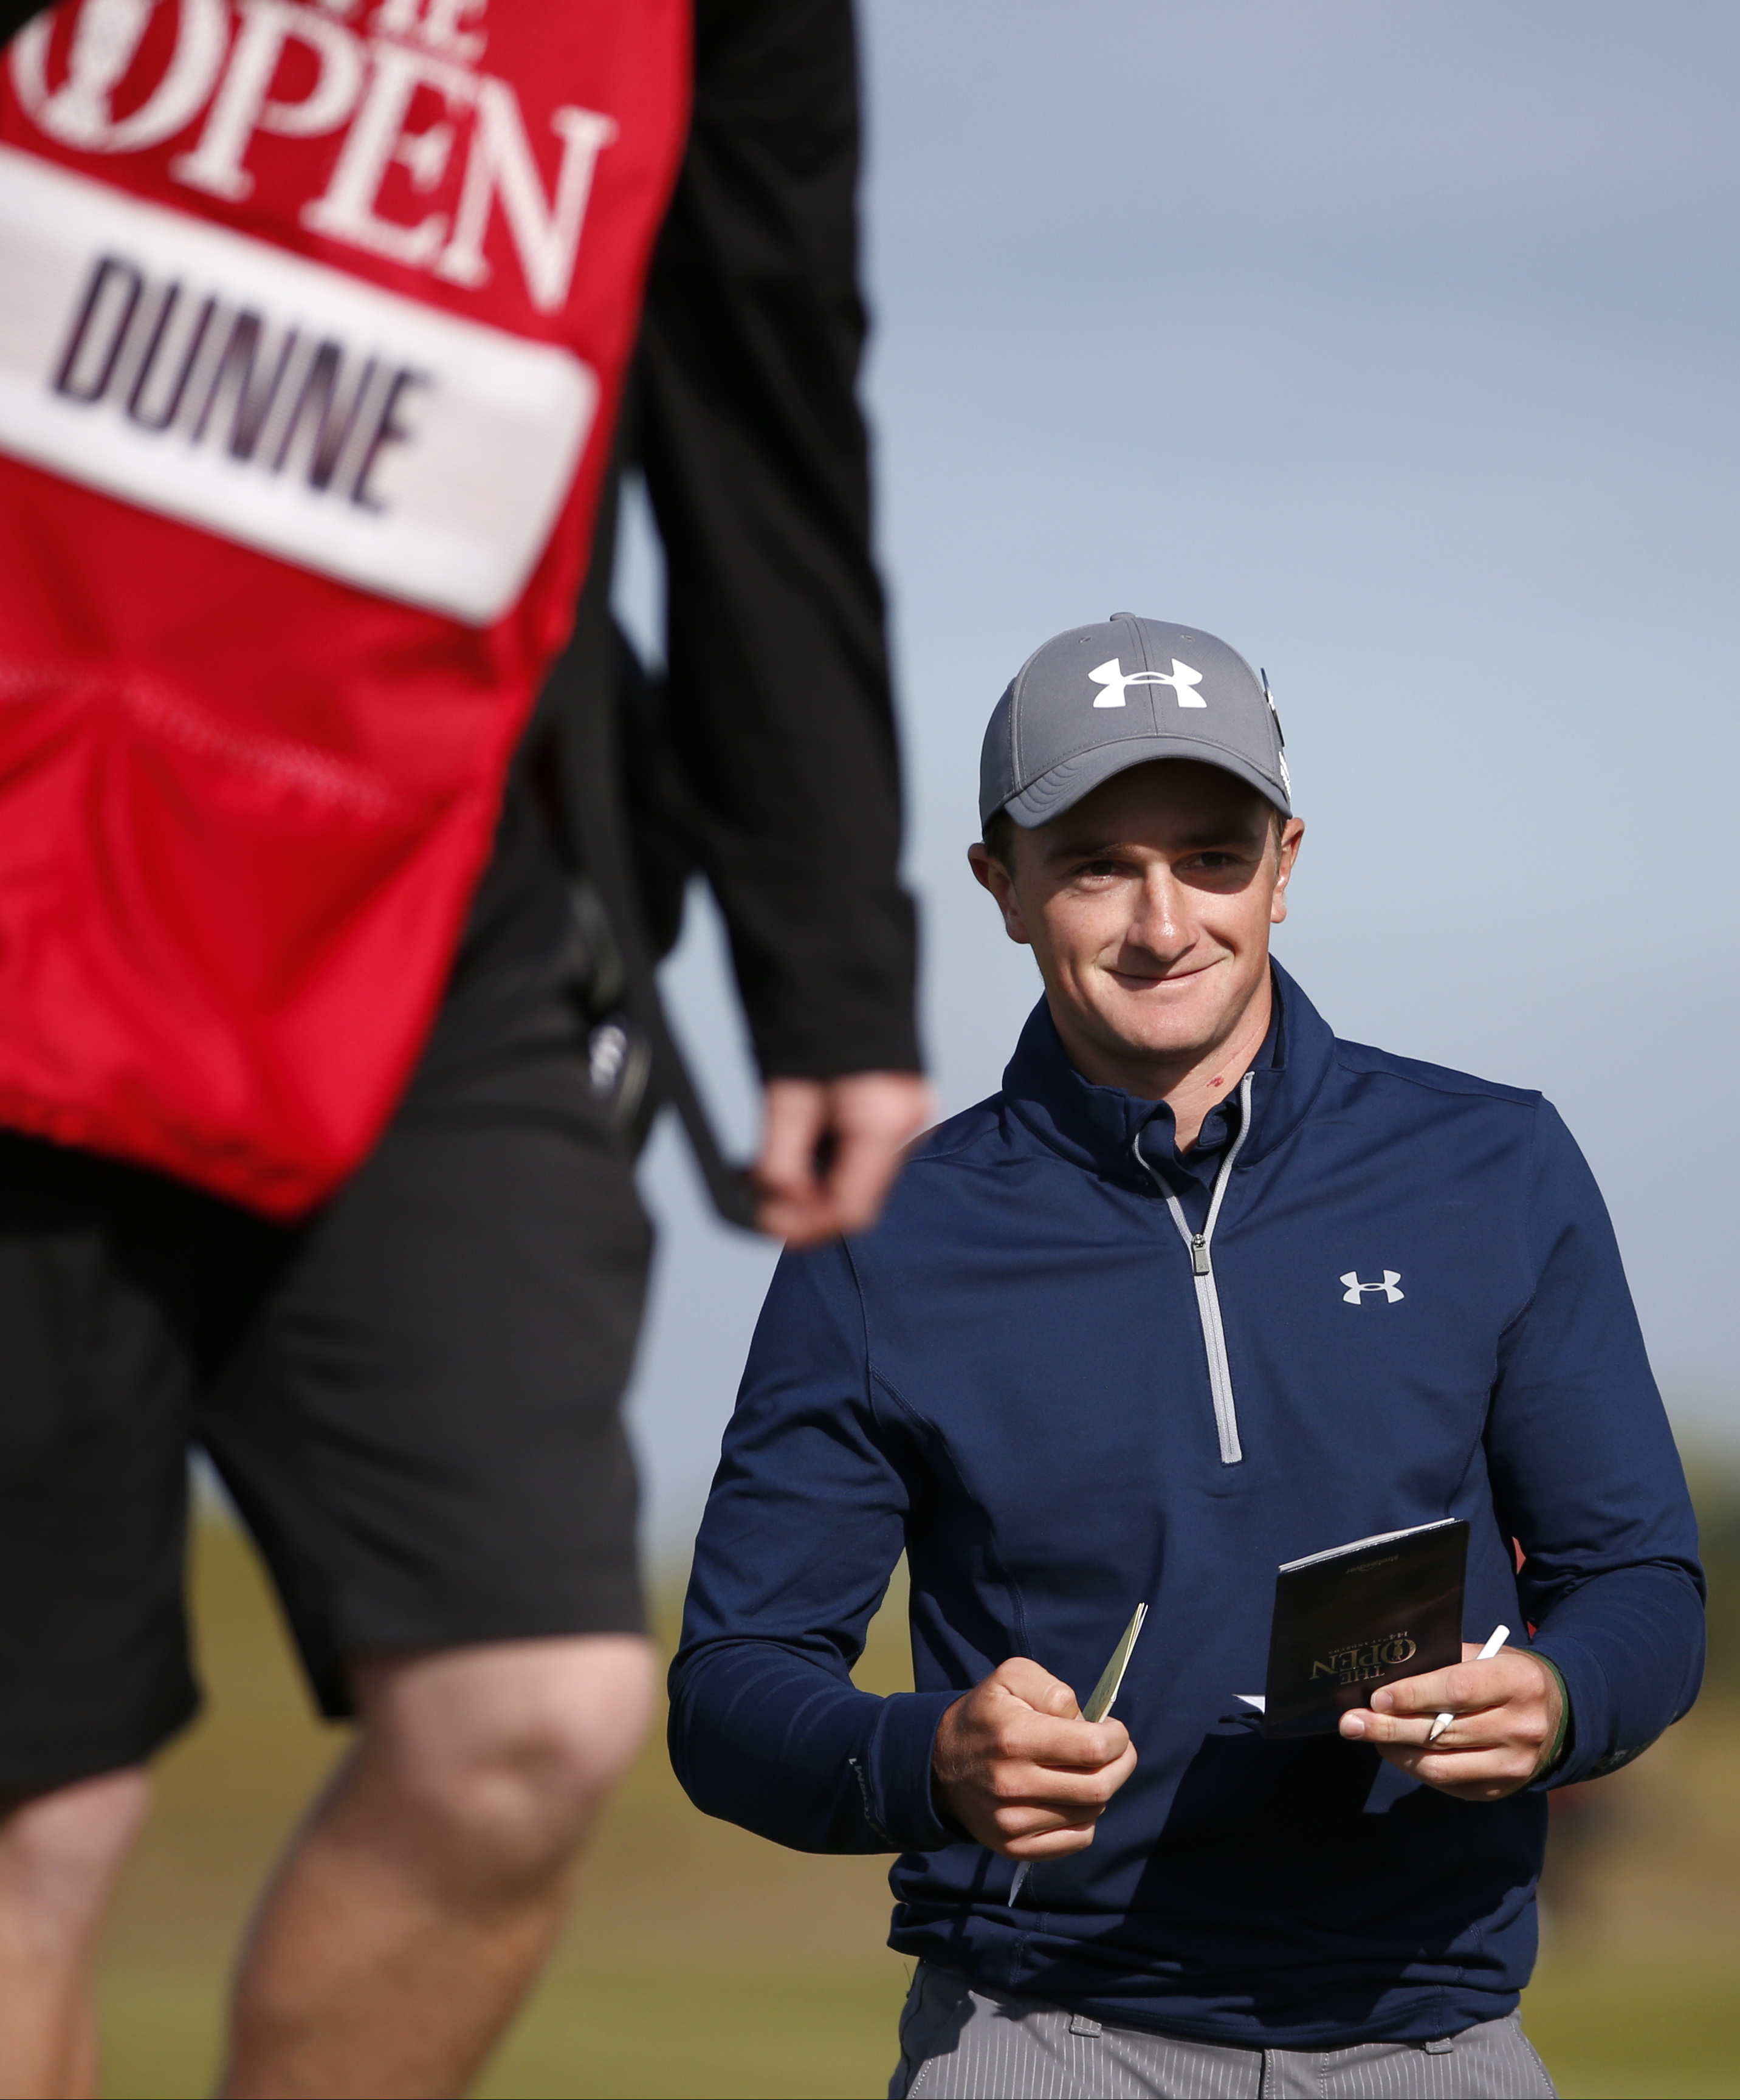 Ireland's Paul Dunne walks on the course during the third round of the British Open Golf Championship at the Old Course, St. Andrews, Scotland, Sunday, July 19, 2015. (AP Photo/Jon Super)